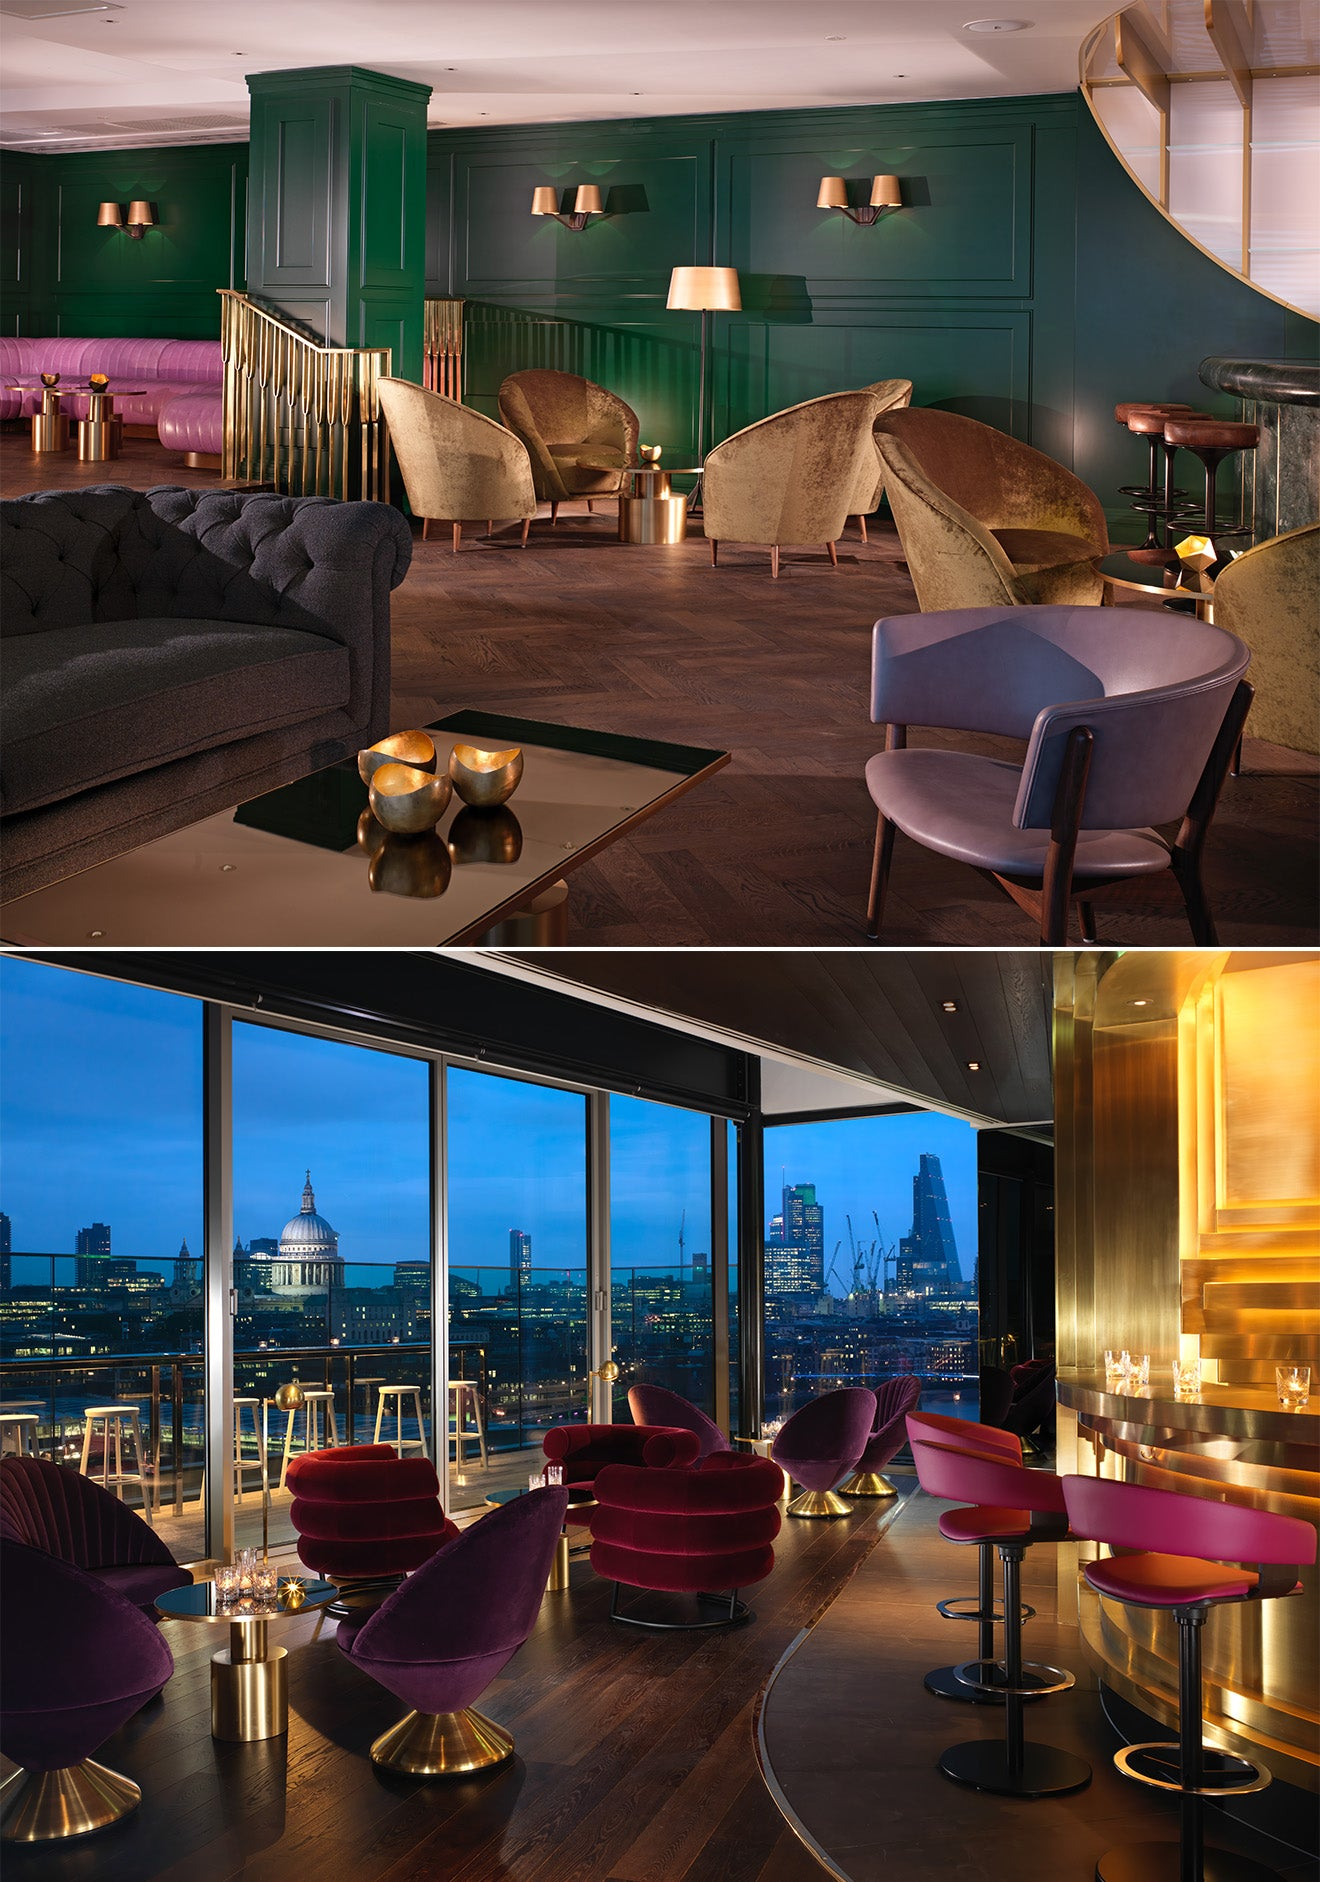 Dandelyan and Rumpus Room at the Mondrian London, Sea Containers House